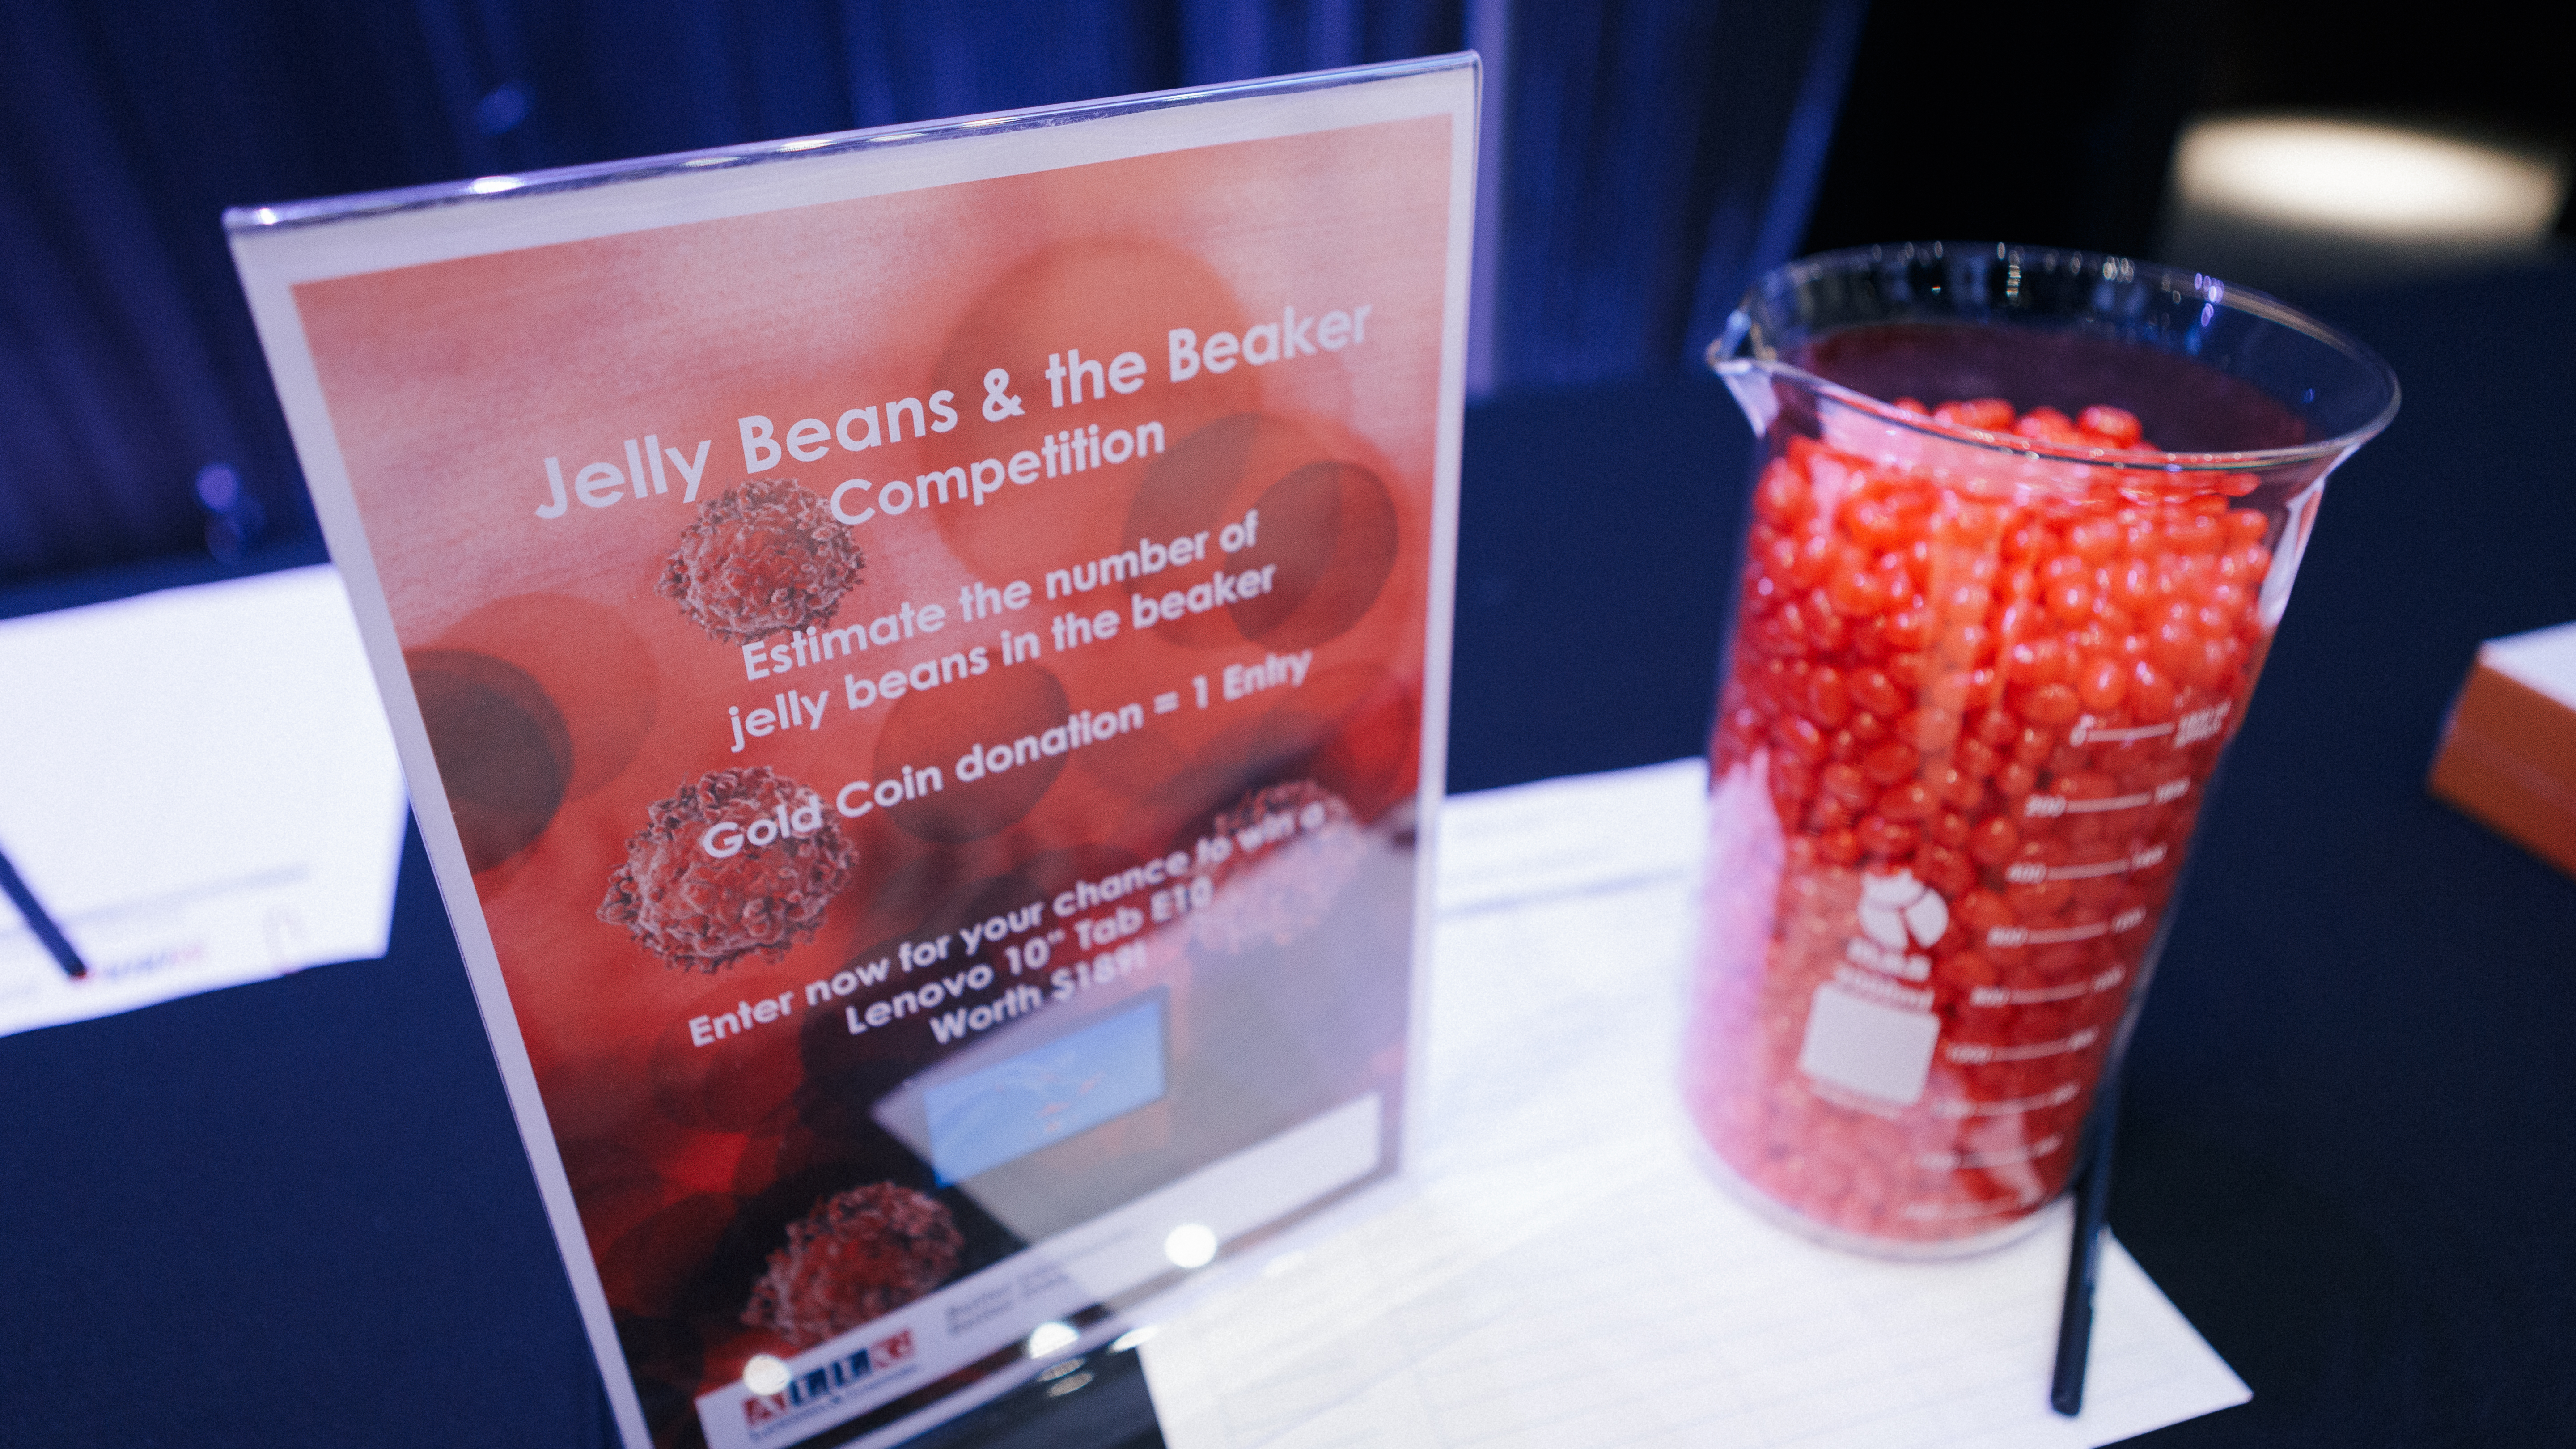 Jelly Beans in the Beaker Competition